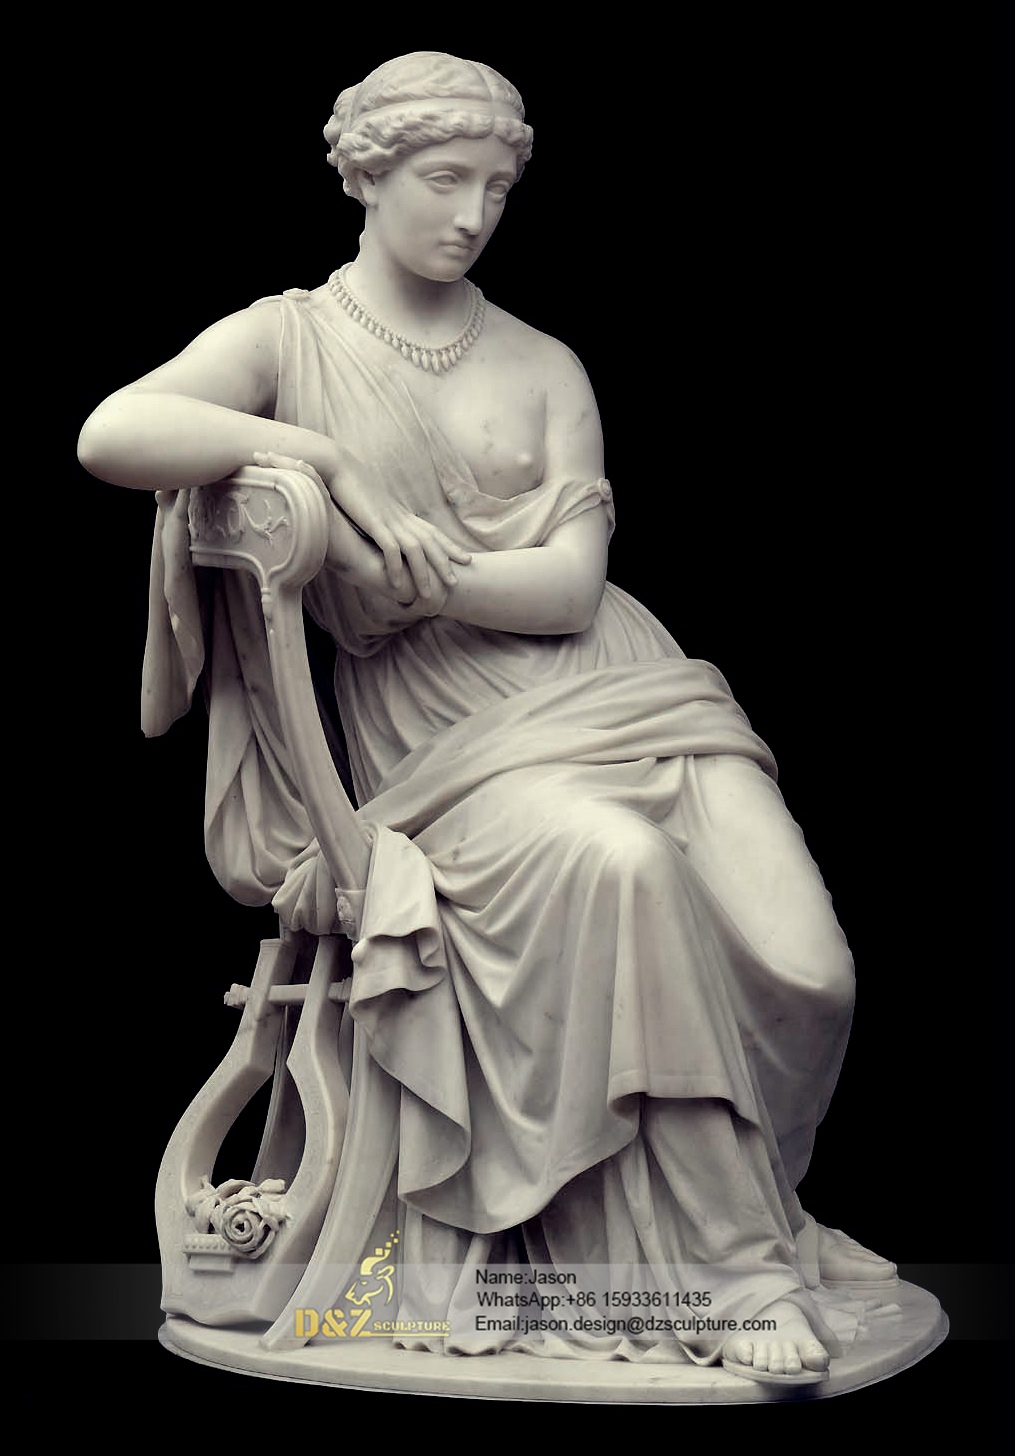 Sitting woman marble sculpture